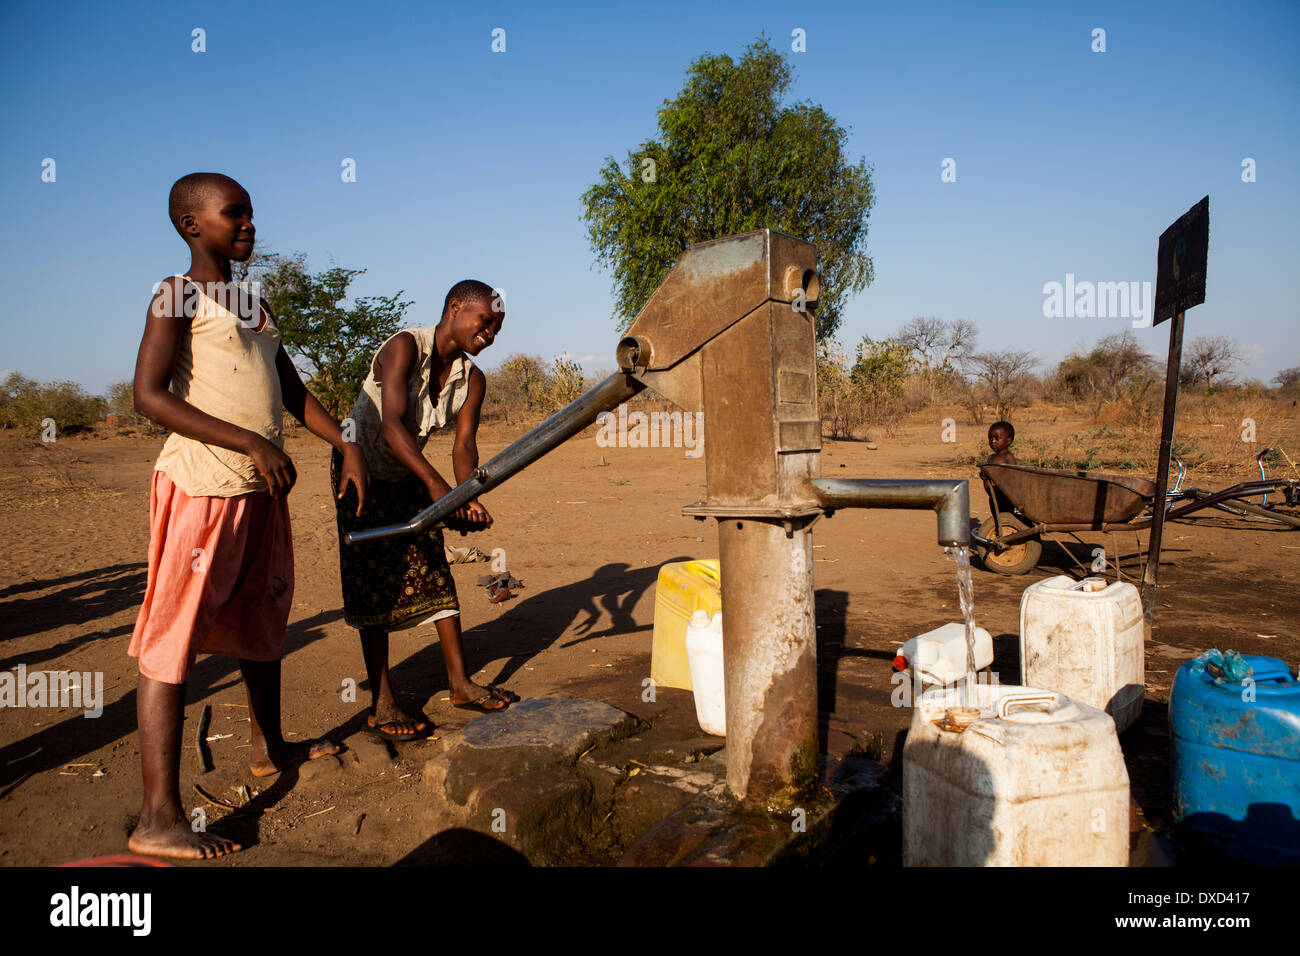 Africa children collecting water at a stand pipe - Stock Image